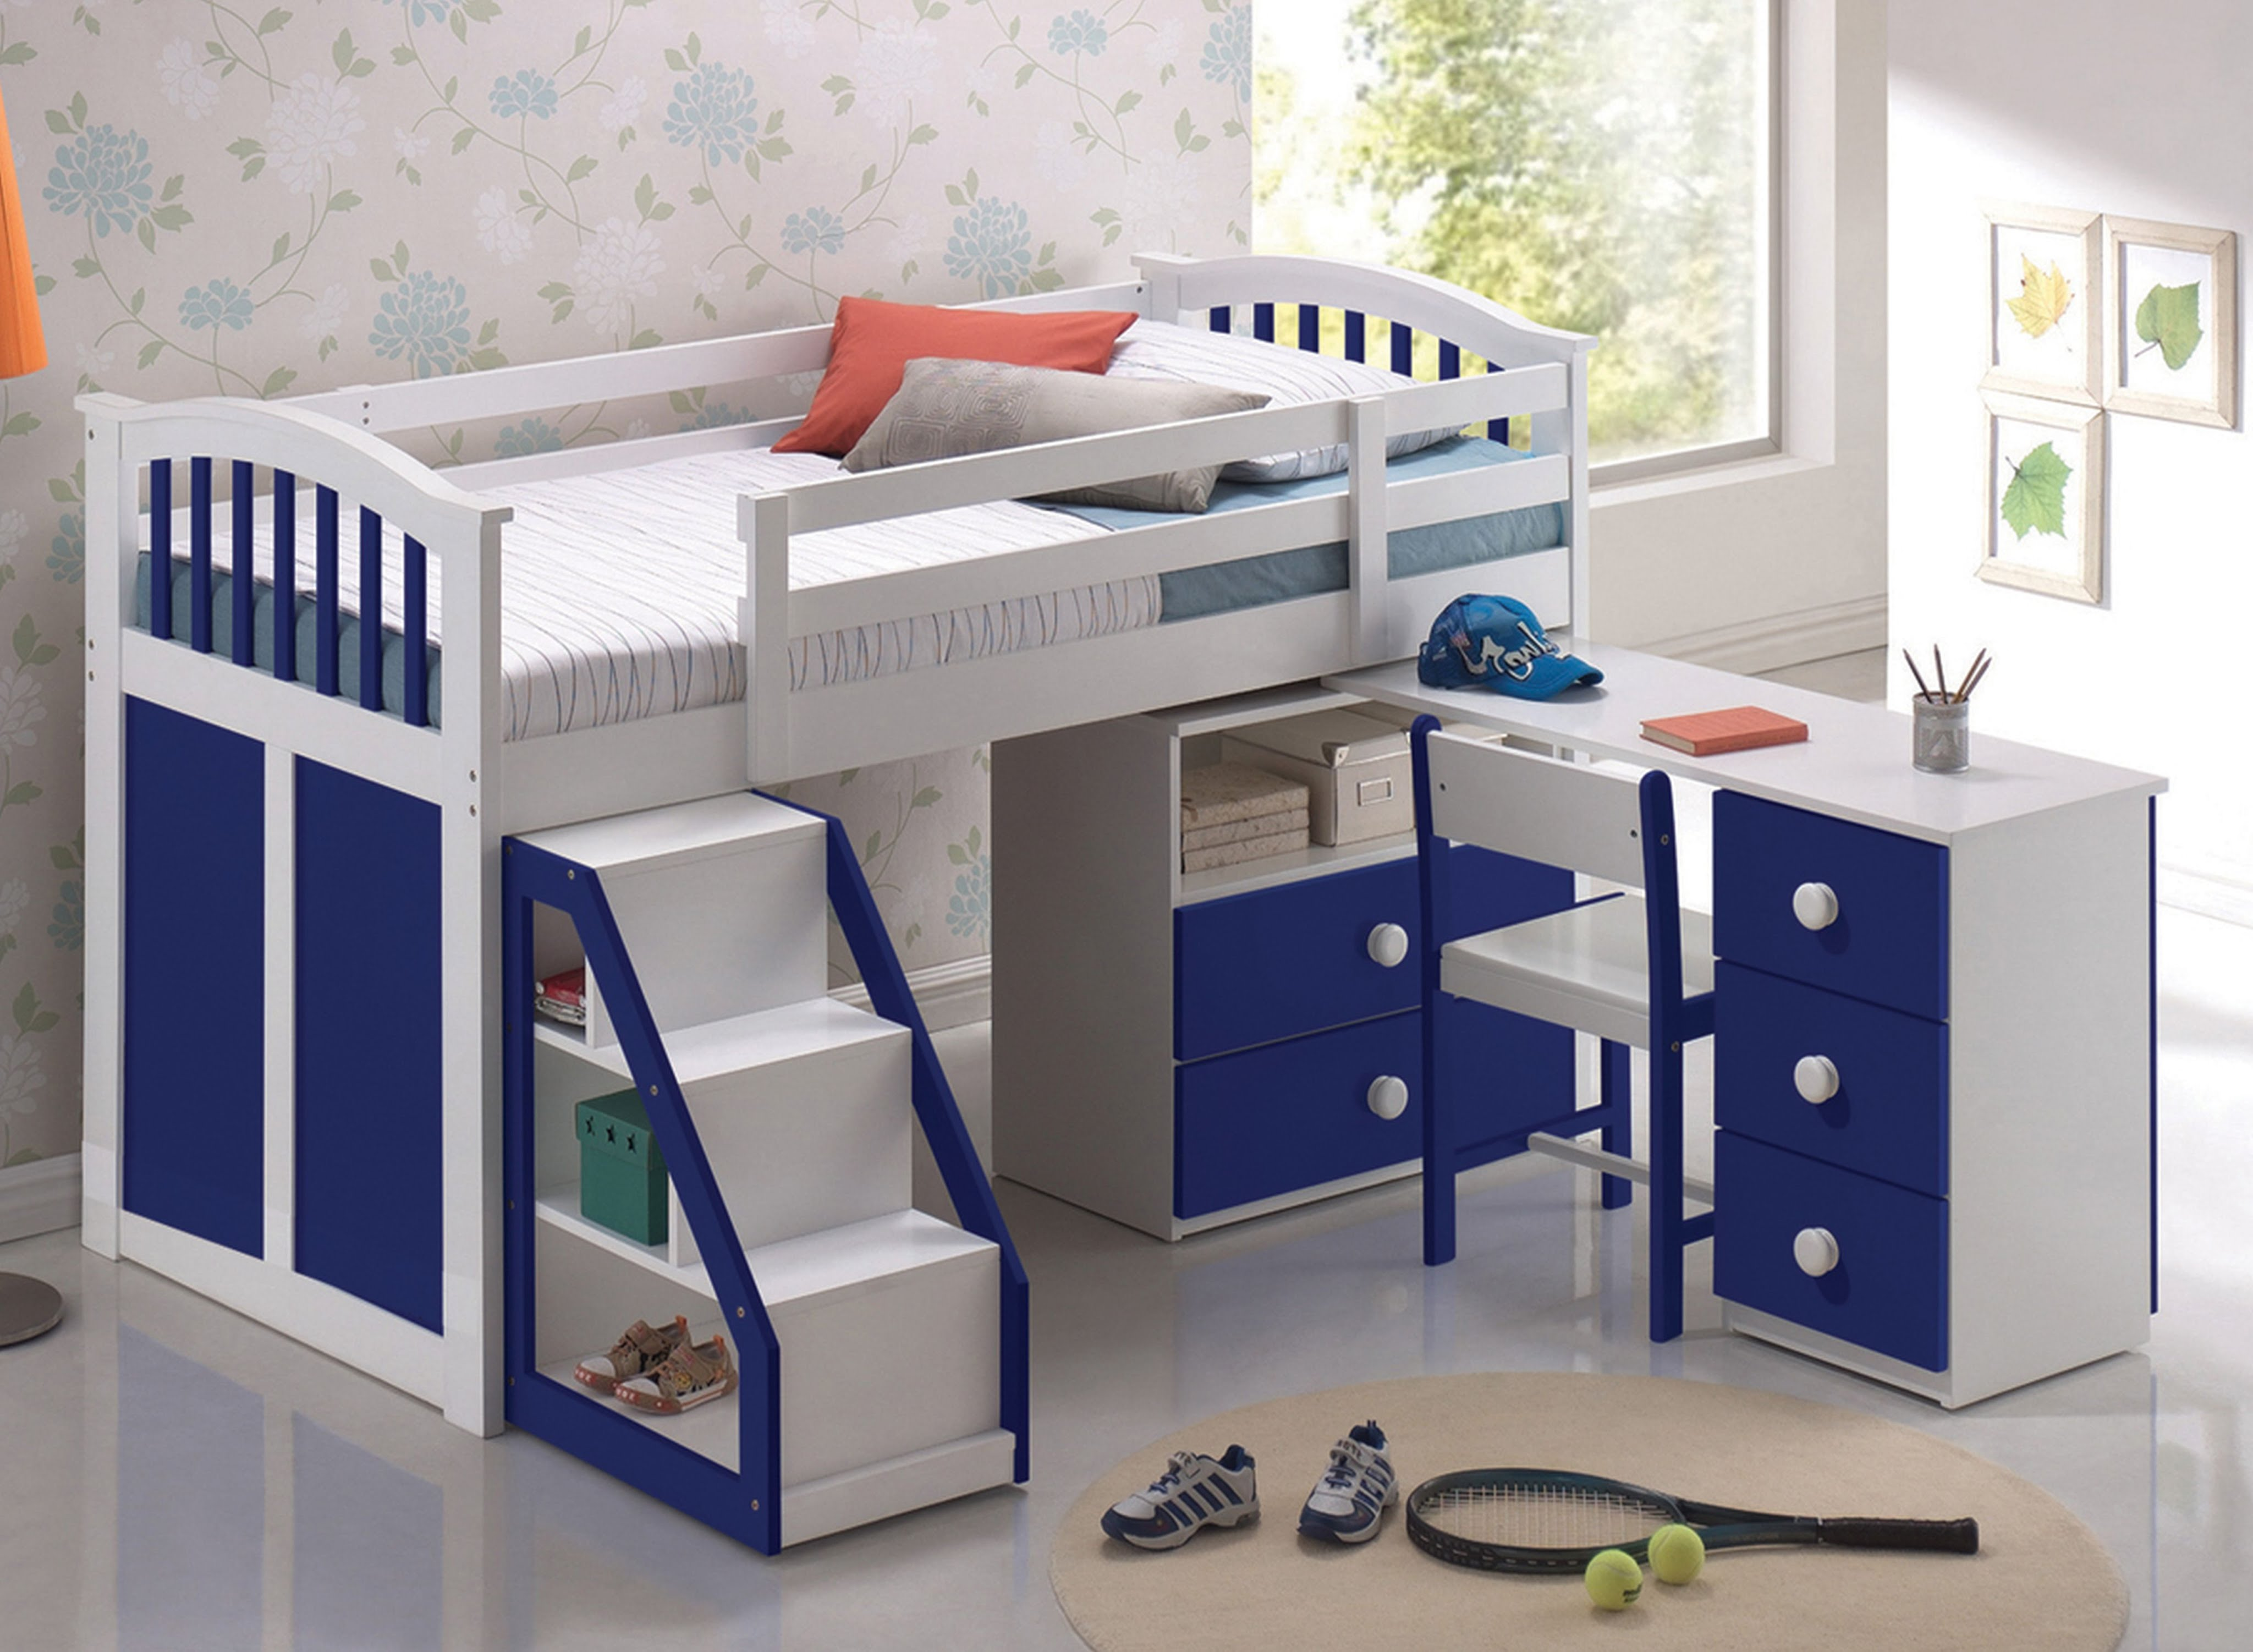 beds for kids cool diy bed for kids ideas - youtube XVJDHLR